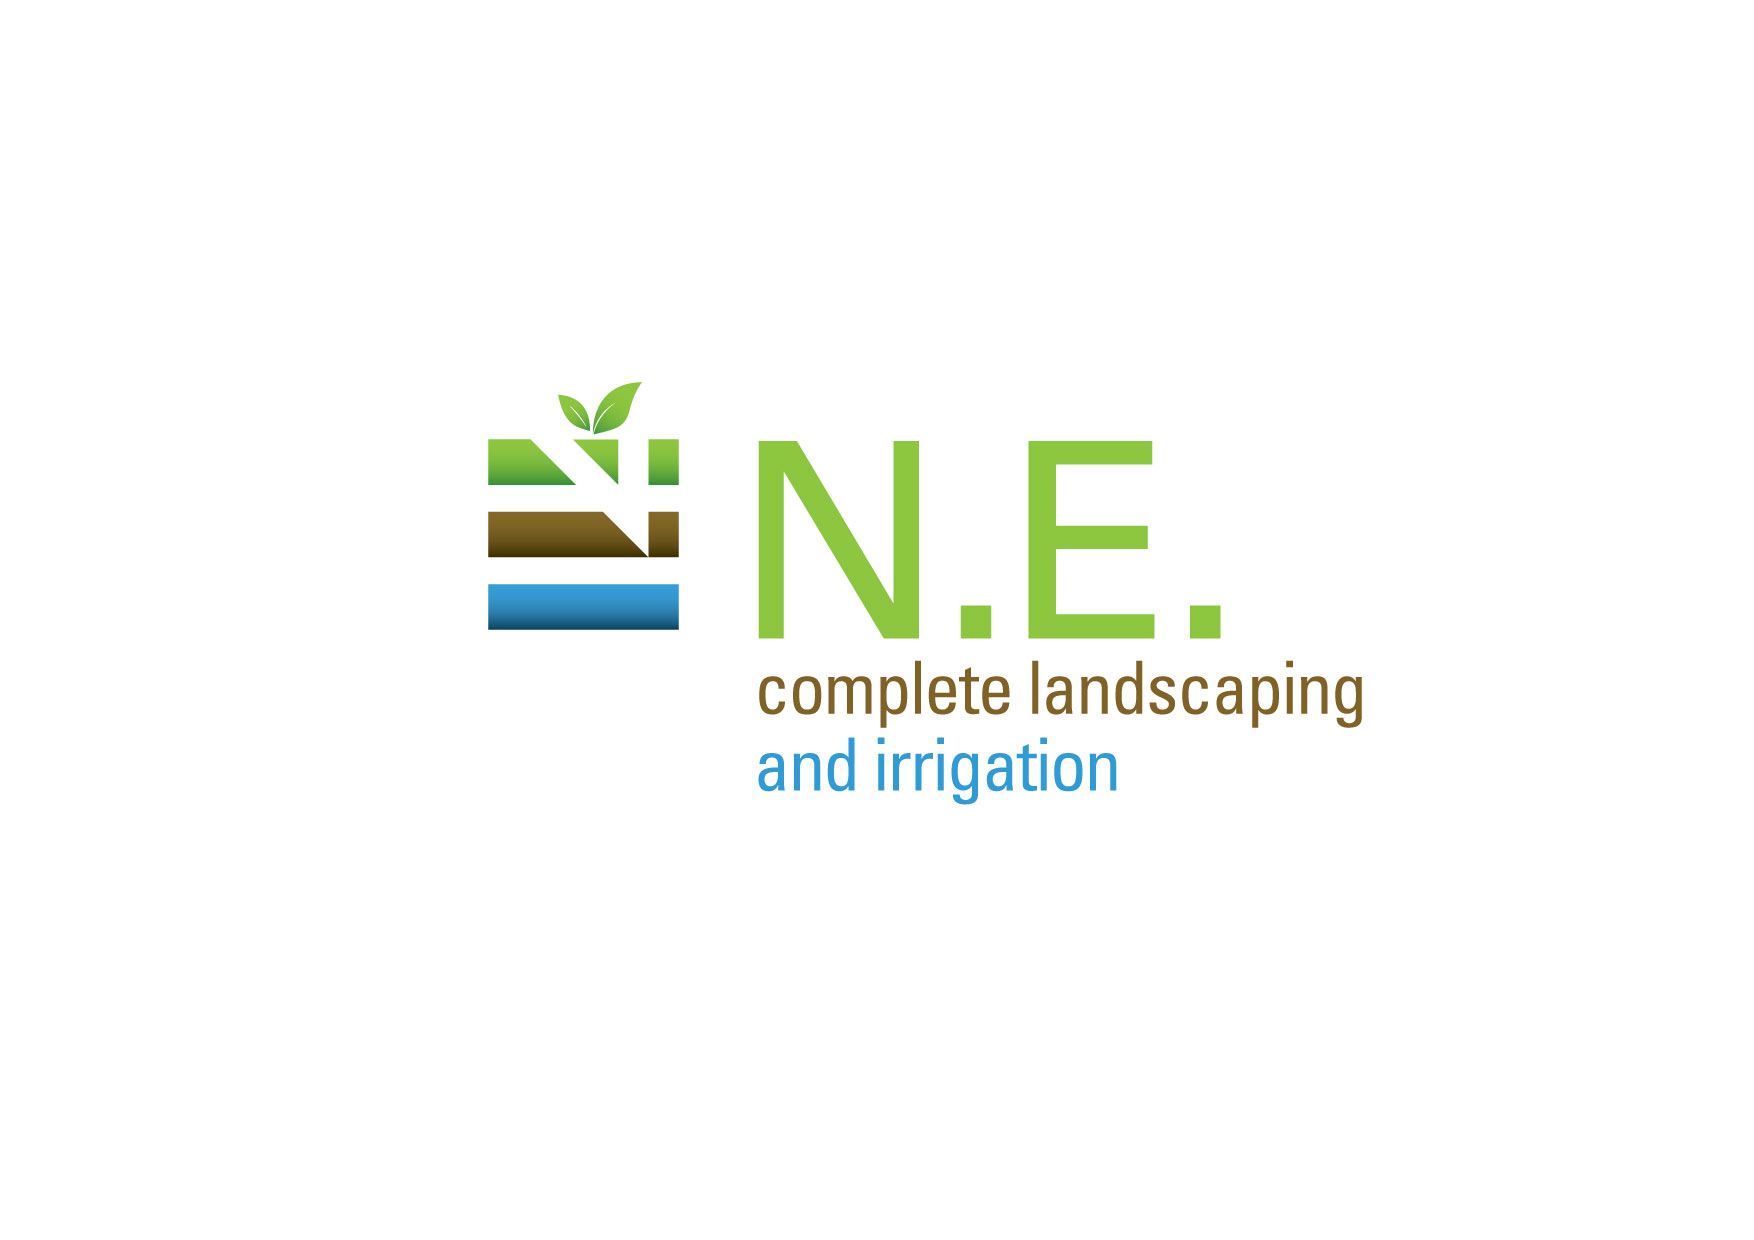 Logo Design by msdeejay - Entry No. 48 in the Logo Design Contest Fun Logo Design for ne complete landscaping and irrigation.